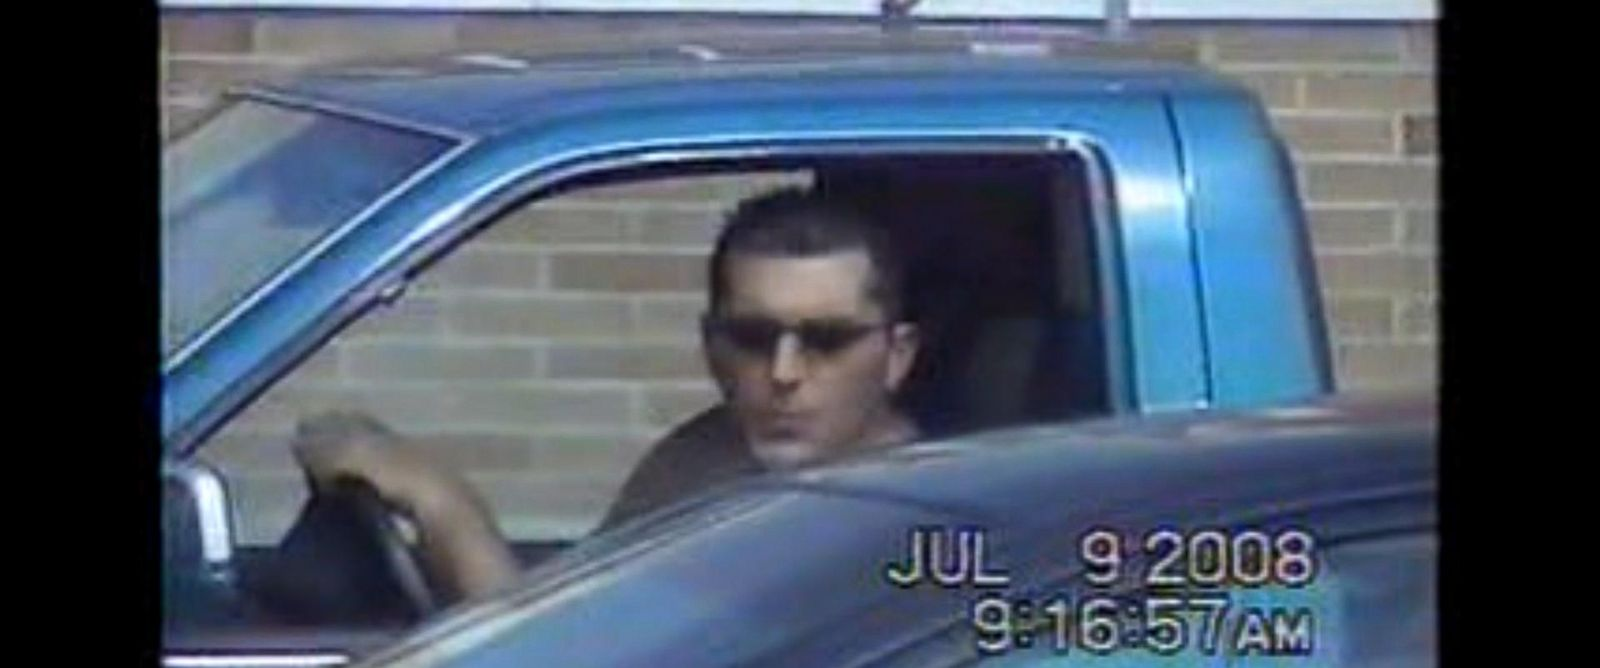 PHOTO: John Caltabiano is seen driving a car despite claiming he couldnt drive in his application for disability benefits.